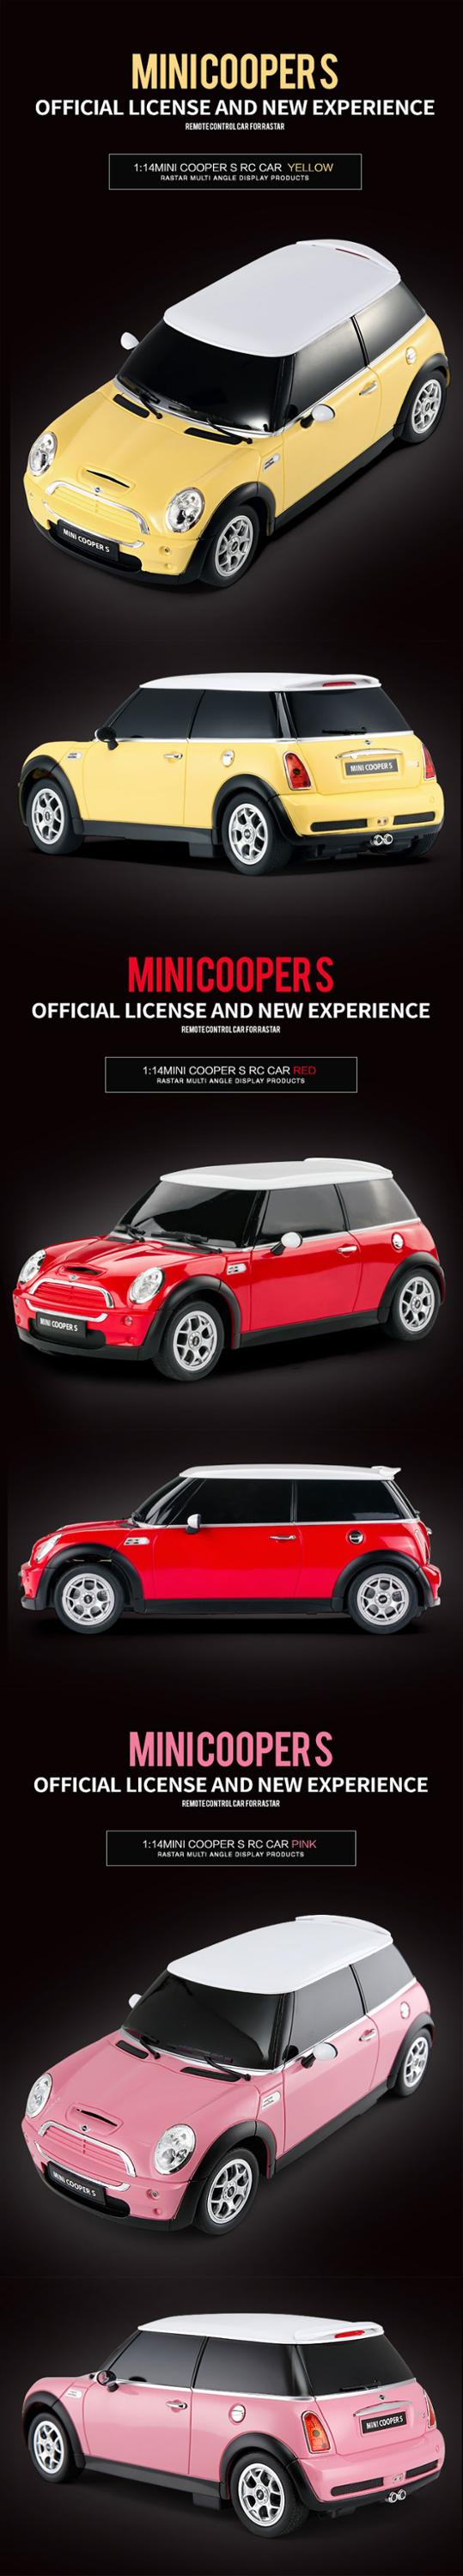 MINI COOPER license car model turn and lights Rastar mini rc car toy for child